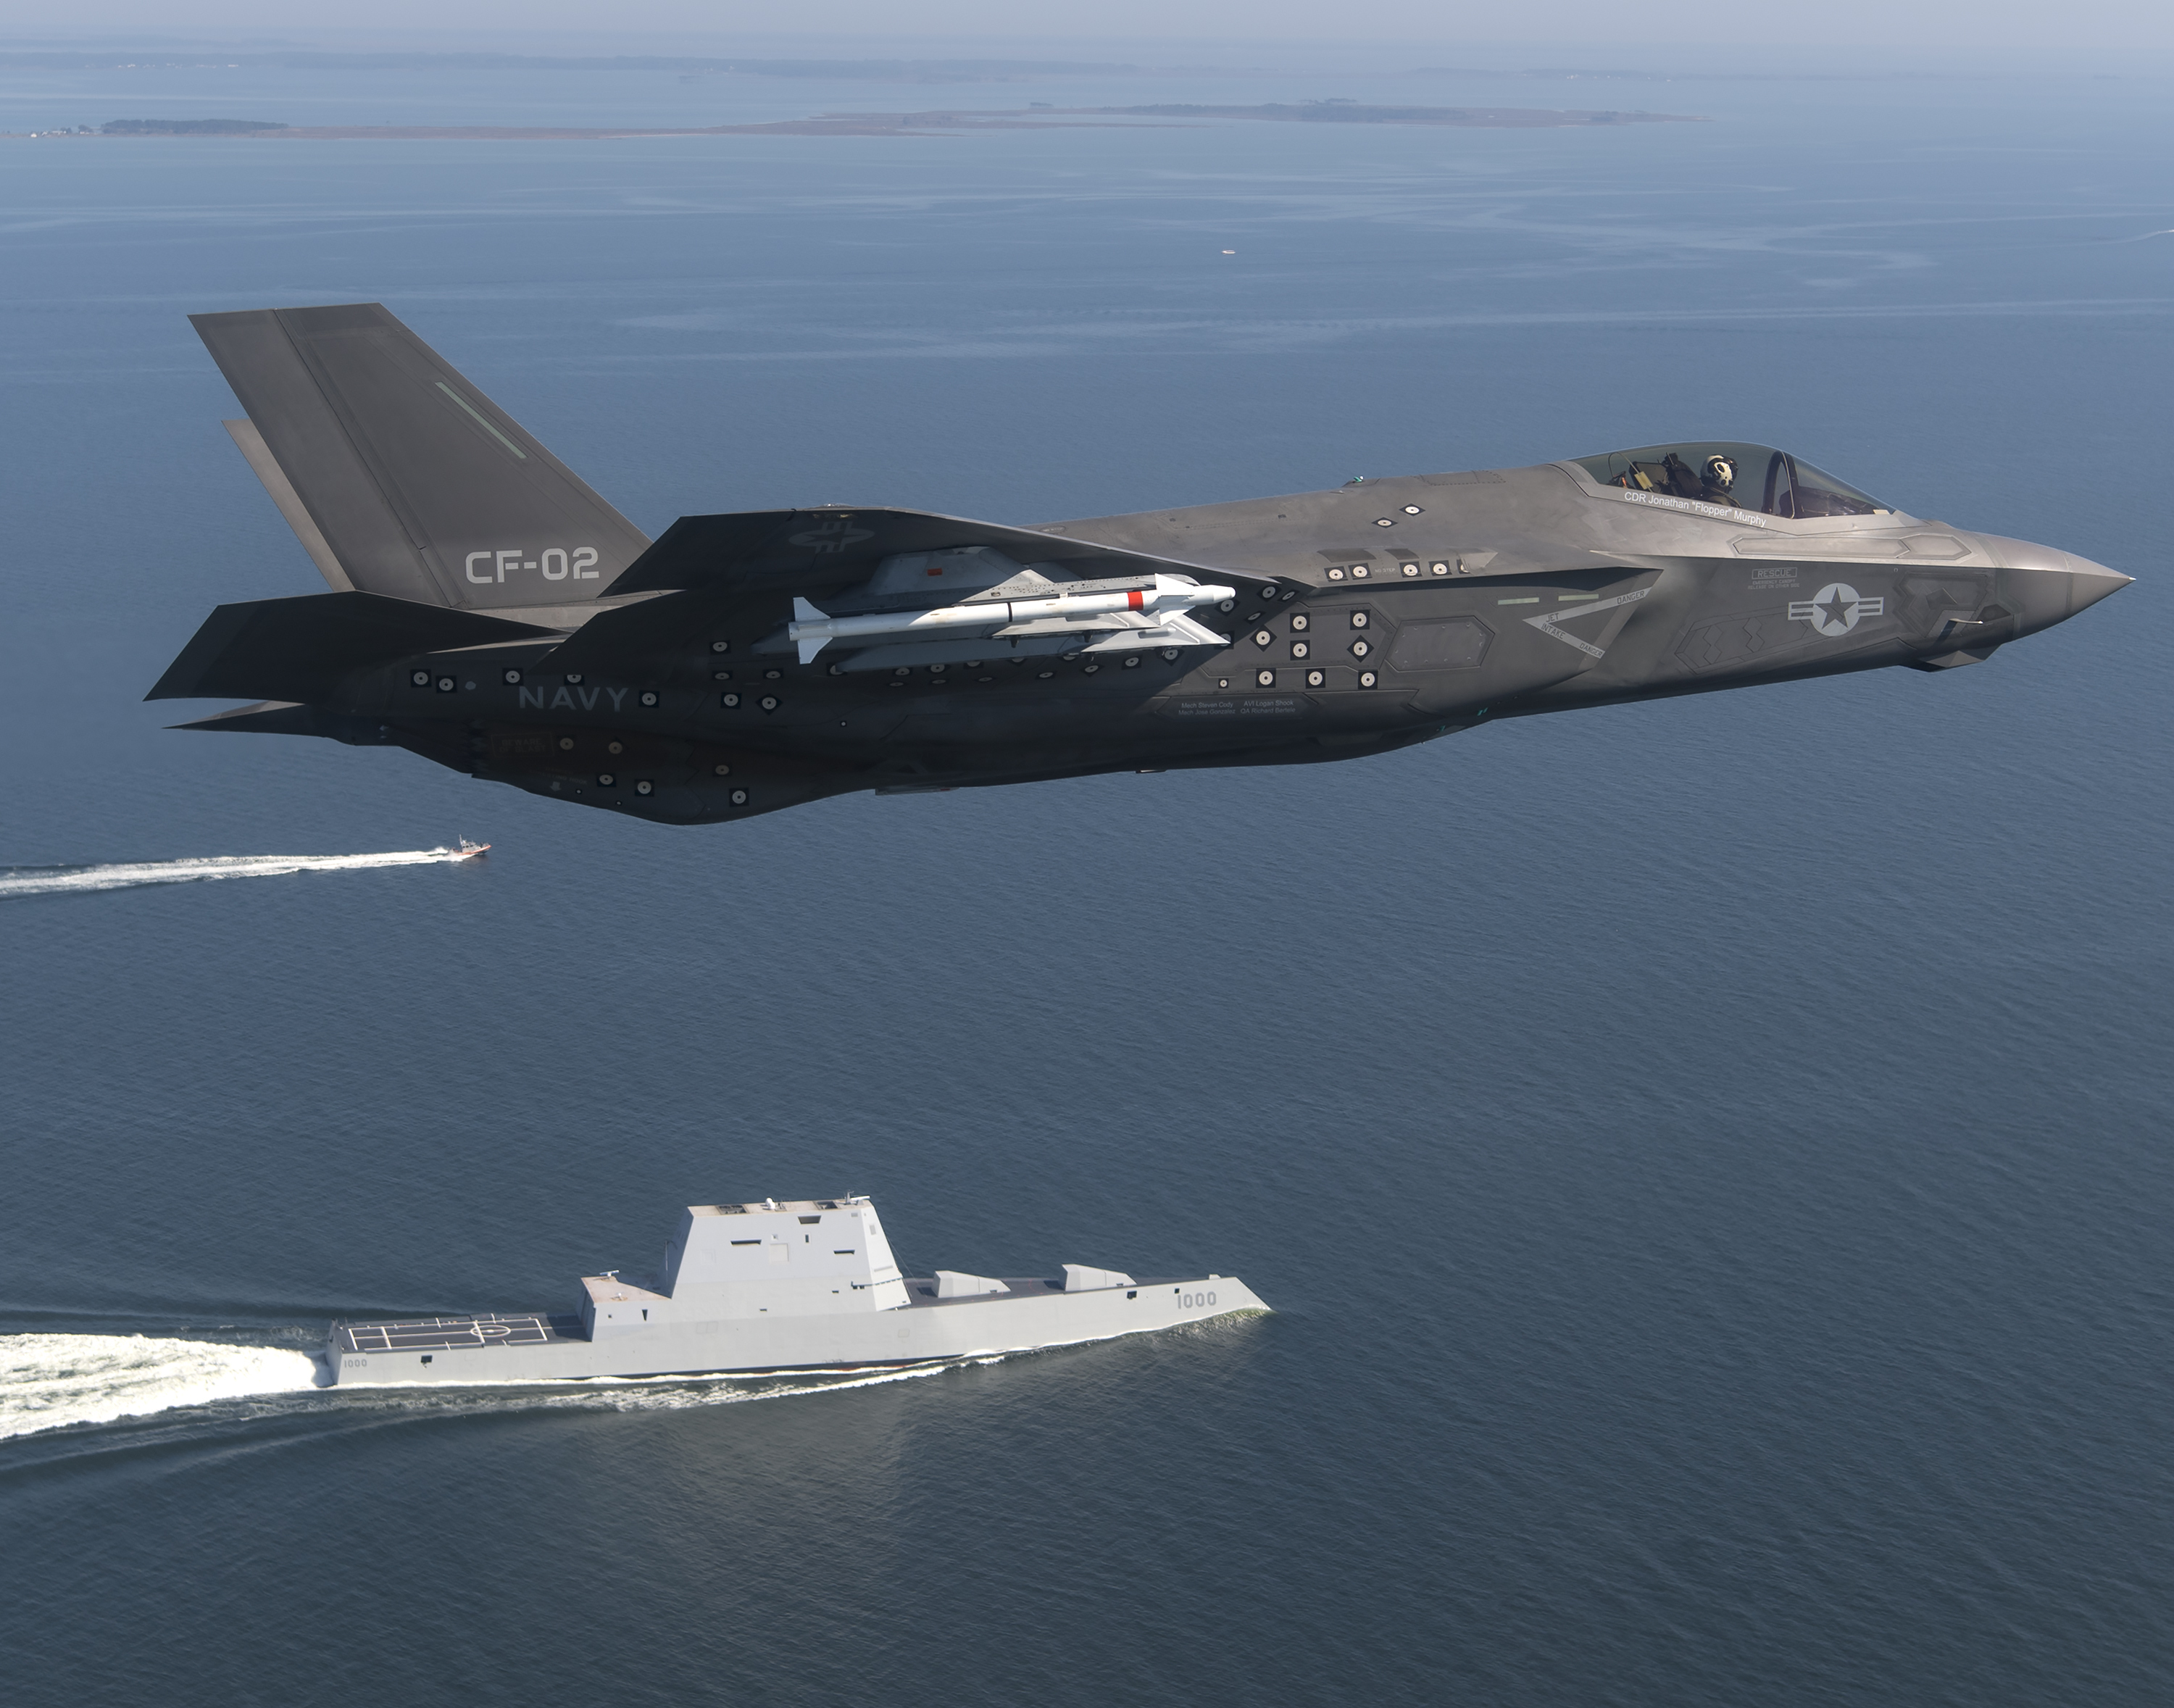 Documents provided to Defense News revealed issues facing the F-35 fighter jet as it neared a major milestone. One issue in particular stood out to readers: Supersonic speeds could cause big problems for the jet′s stealth coating. (Andy Wolfe/U.S. Navy)